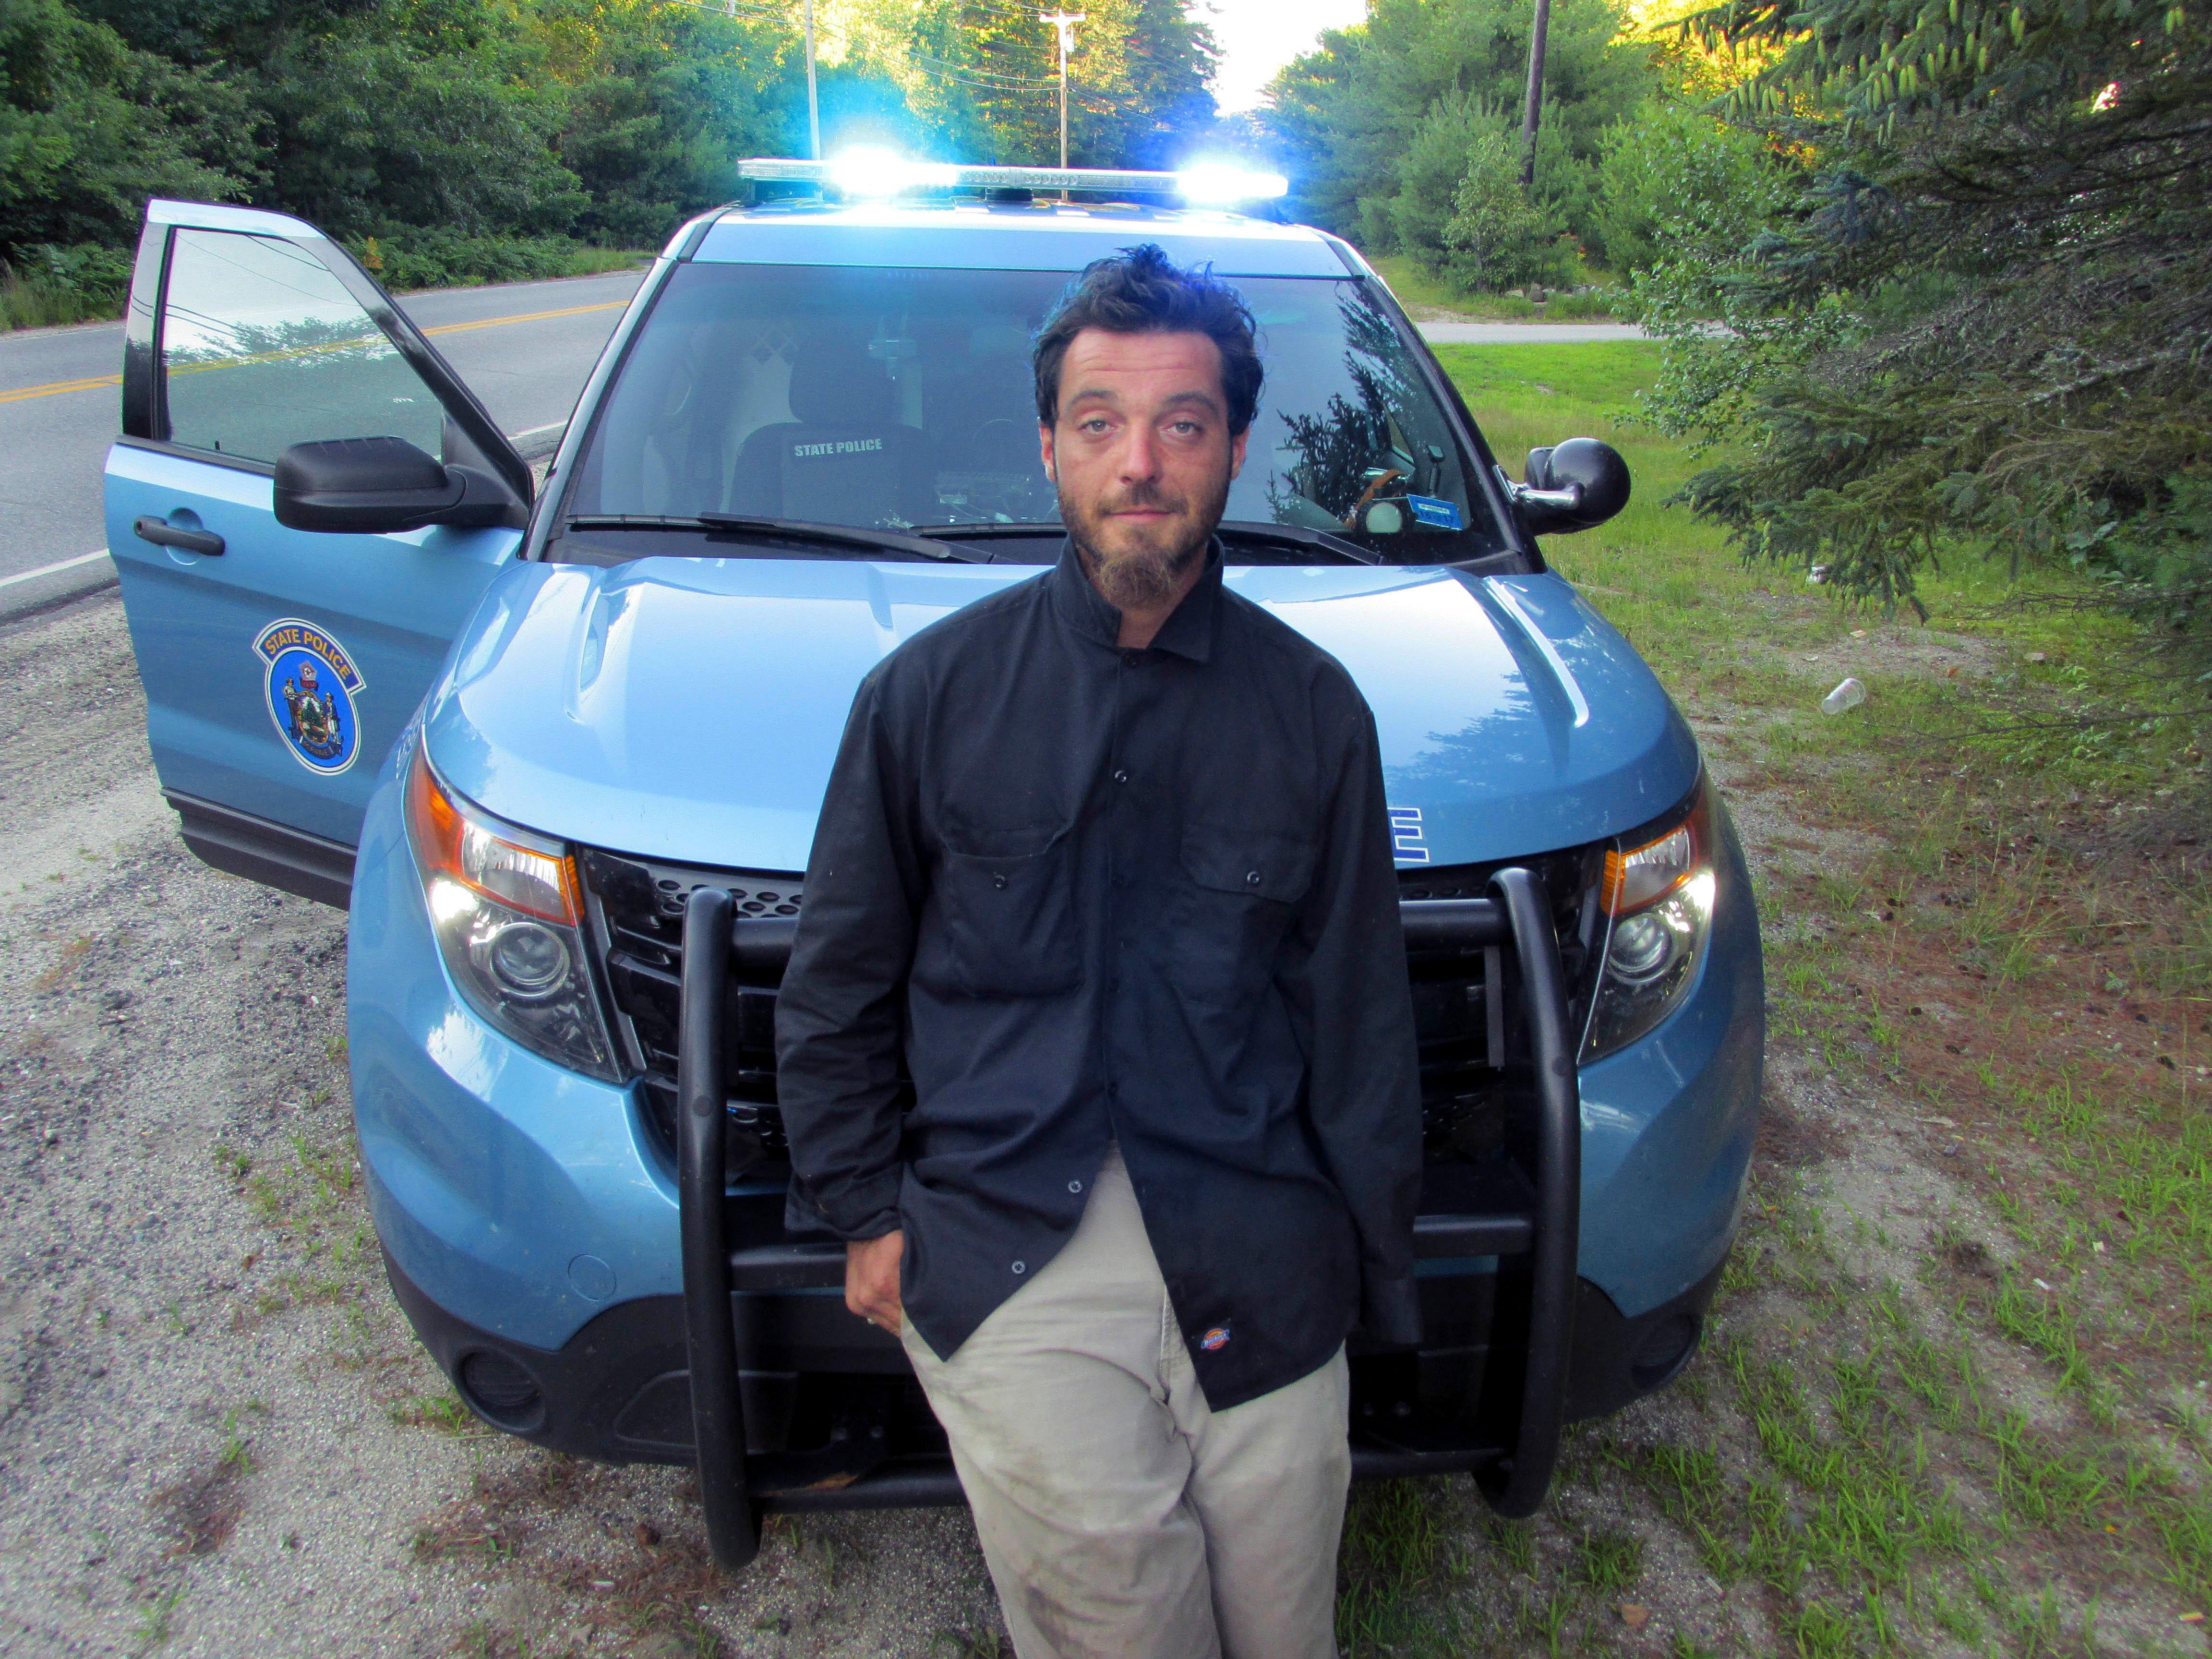 FILE - This Tuesday, July 25, 2017, file photo released by the Maine State Police shows Corey Berry, of Hollis, Maine, arrested and charged with criminal threatening after police said he was found strolling down a street wearing a clown mask with a machete taped to his amputated arm. (Maine State Police via AP, File)